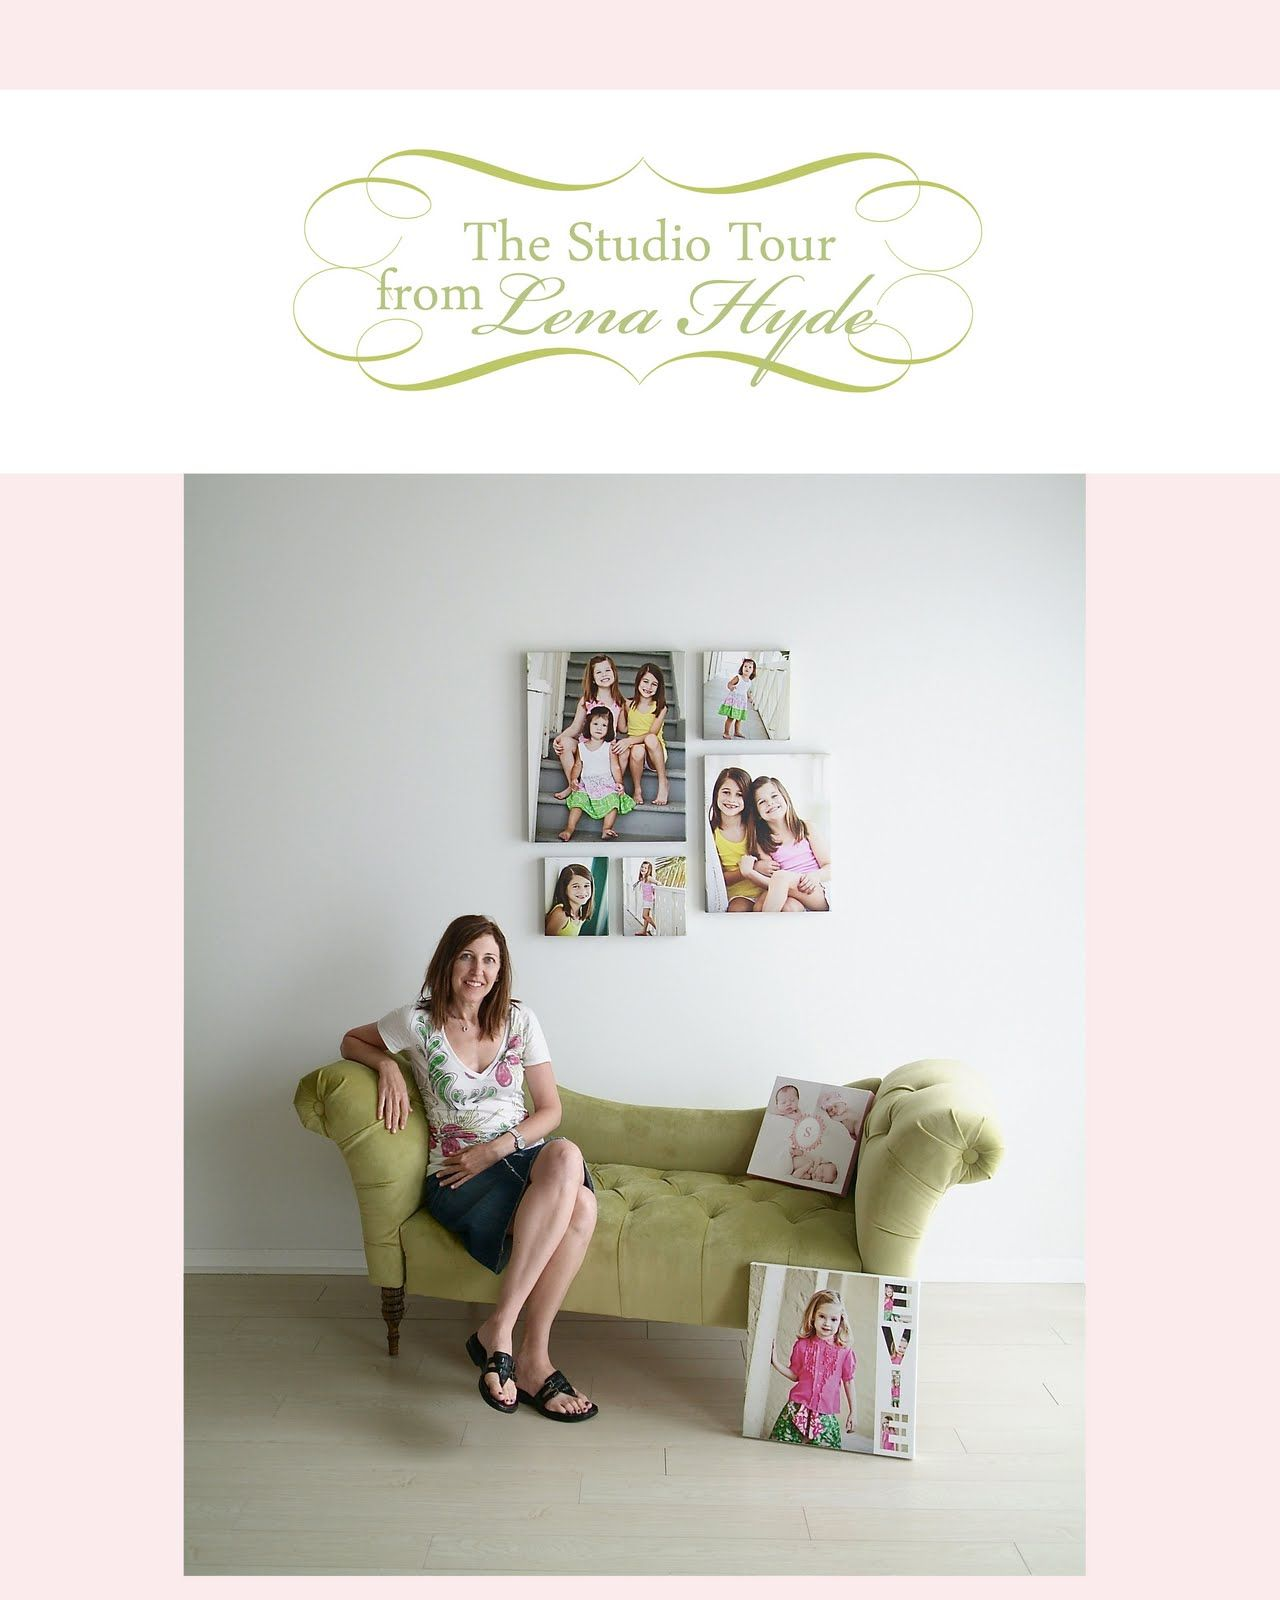 The Savvy Photographer: The Studio Tour from Lena Hyde